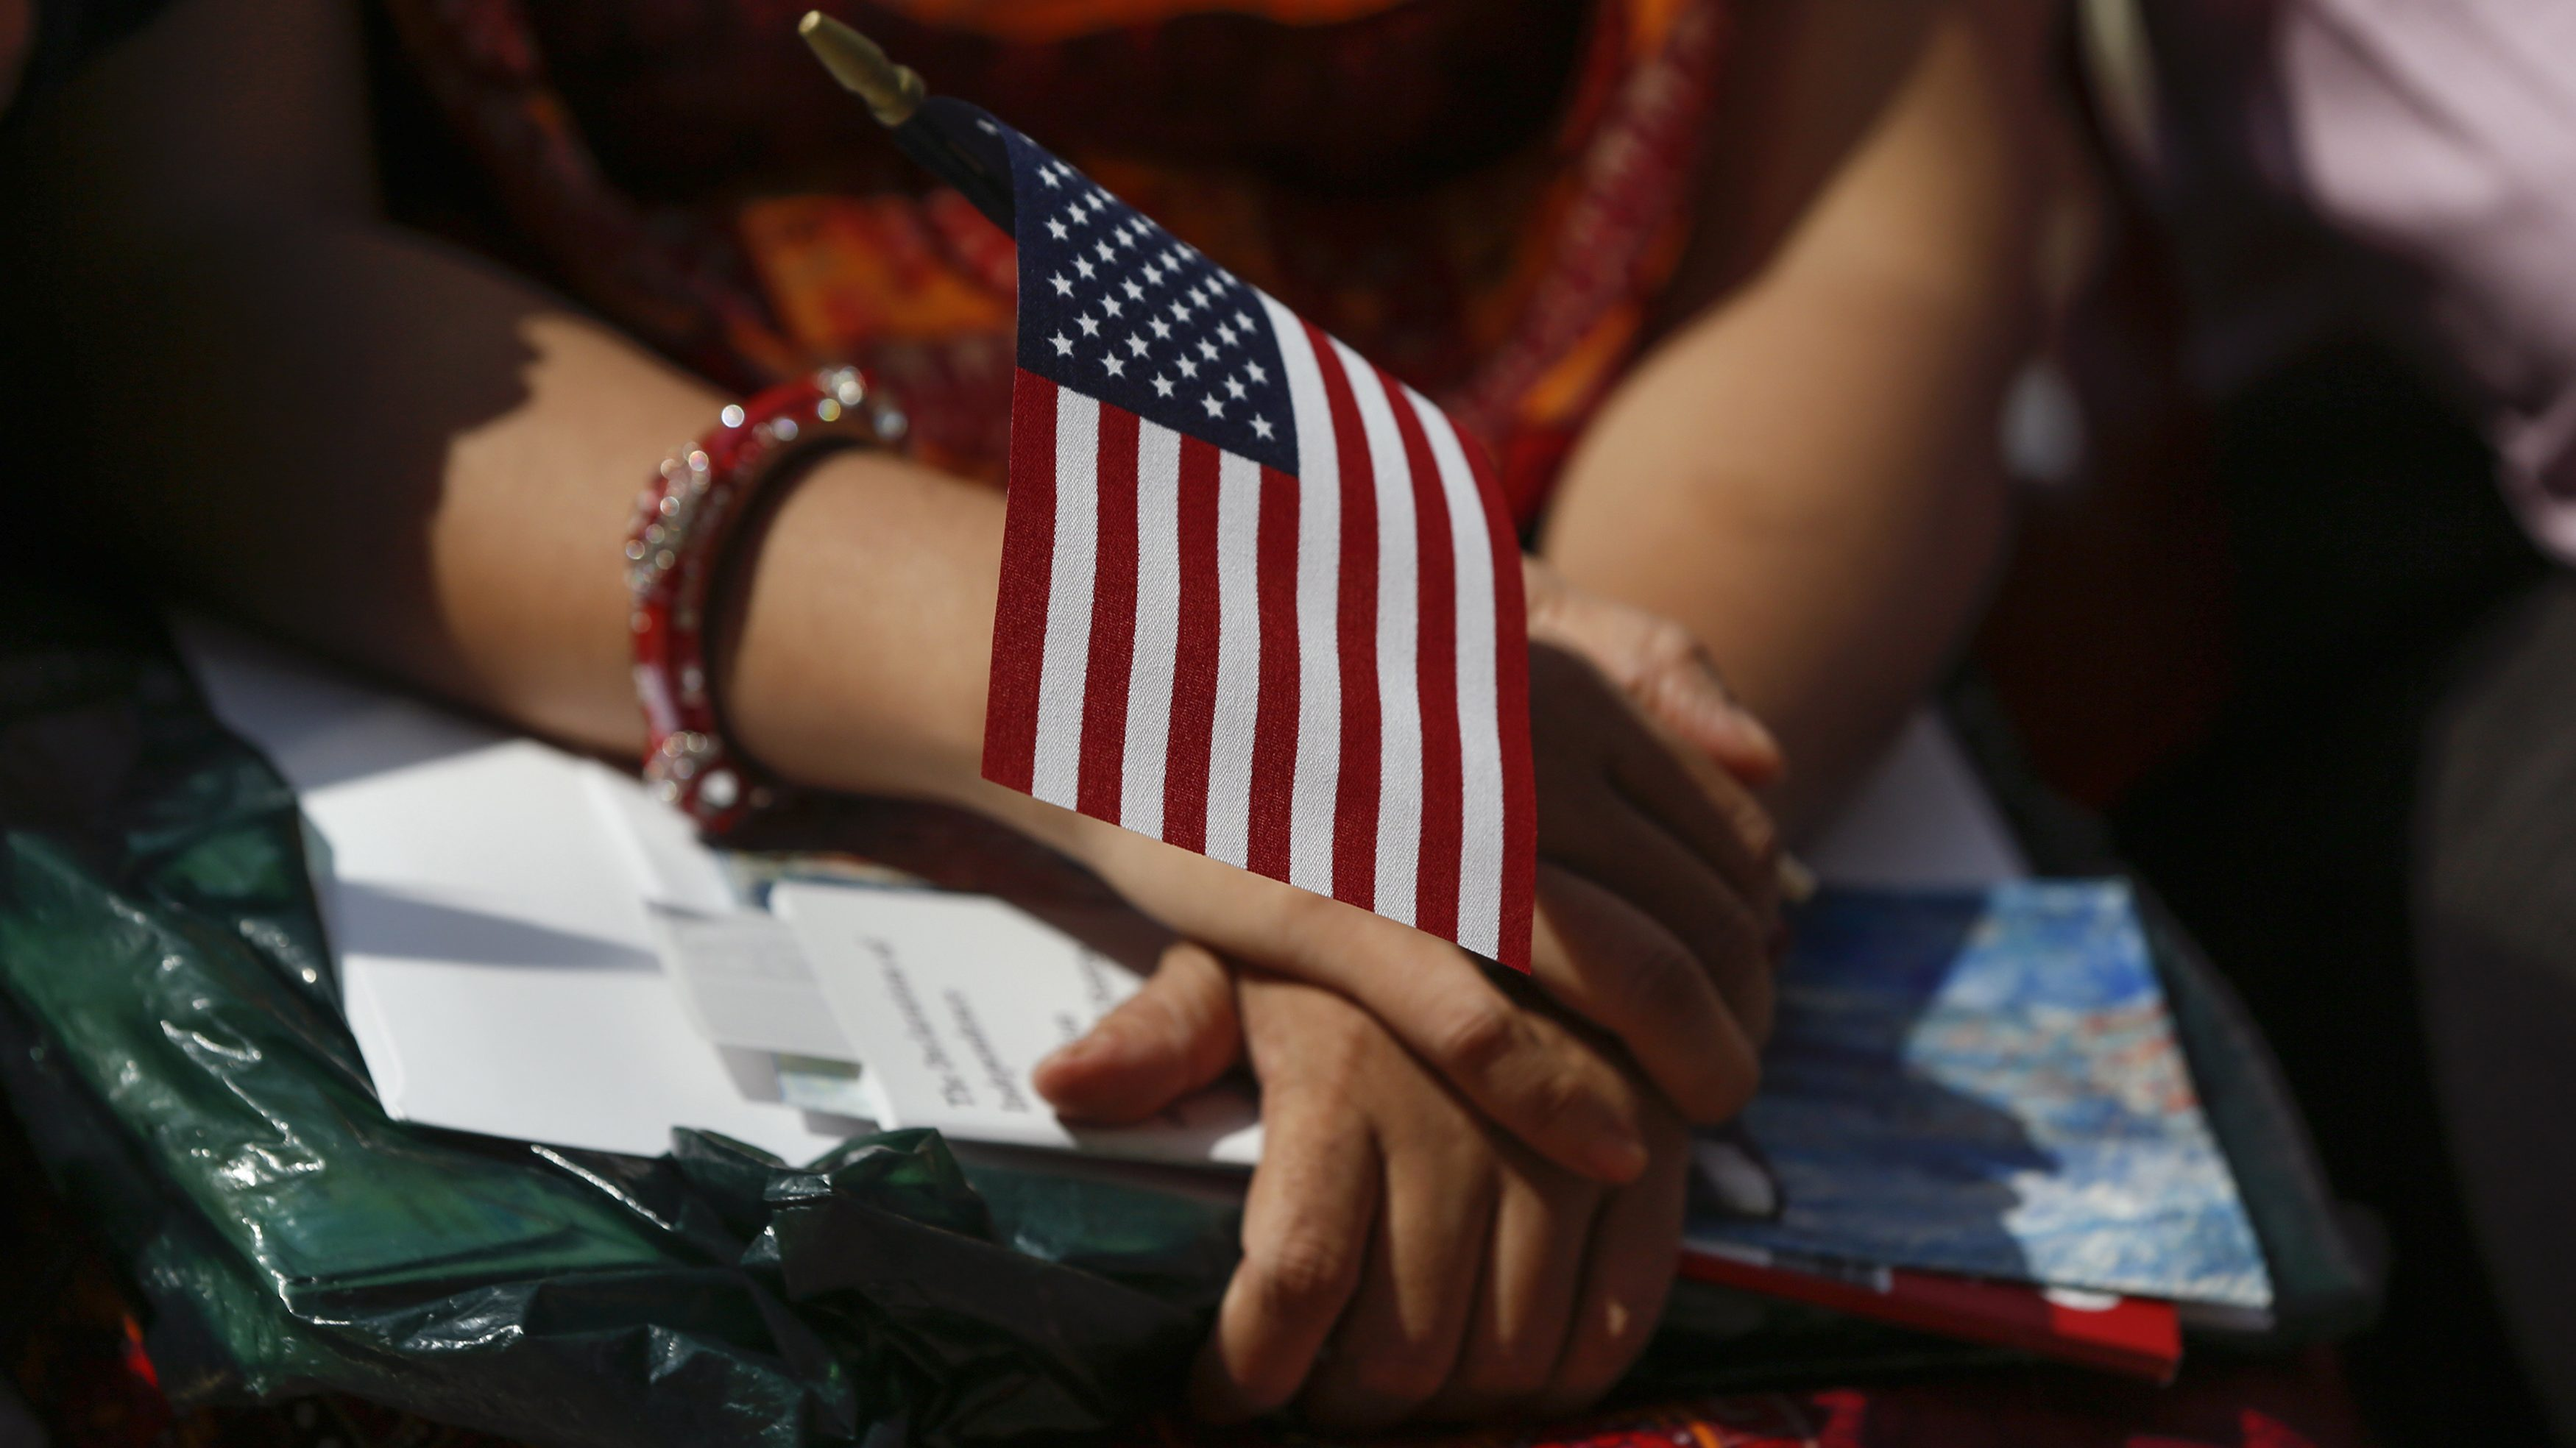 A new American citizen holds a U.S. flag during a naturalization ceremony at The Metropolitan Museum of Art in New York July 22, 2014. Seventy-five people from 42 countries became American citizens at an event held by U.S. Citizenship and Immigration Services (USCIS) at the Museum. REUTERS/Shannon Stapleton (UNITED STATES  - Tags: SOCIETY POLITICS IMMIGRATION) - GM1EA7N039V01